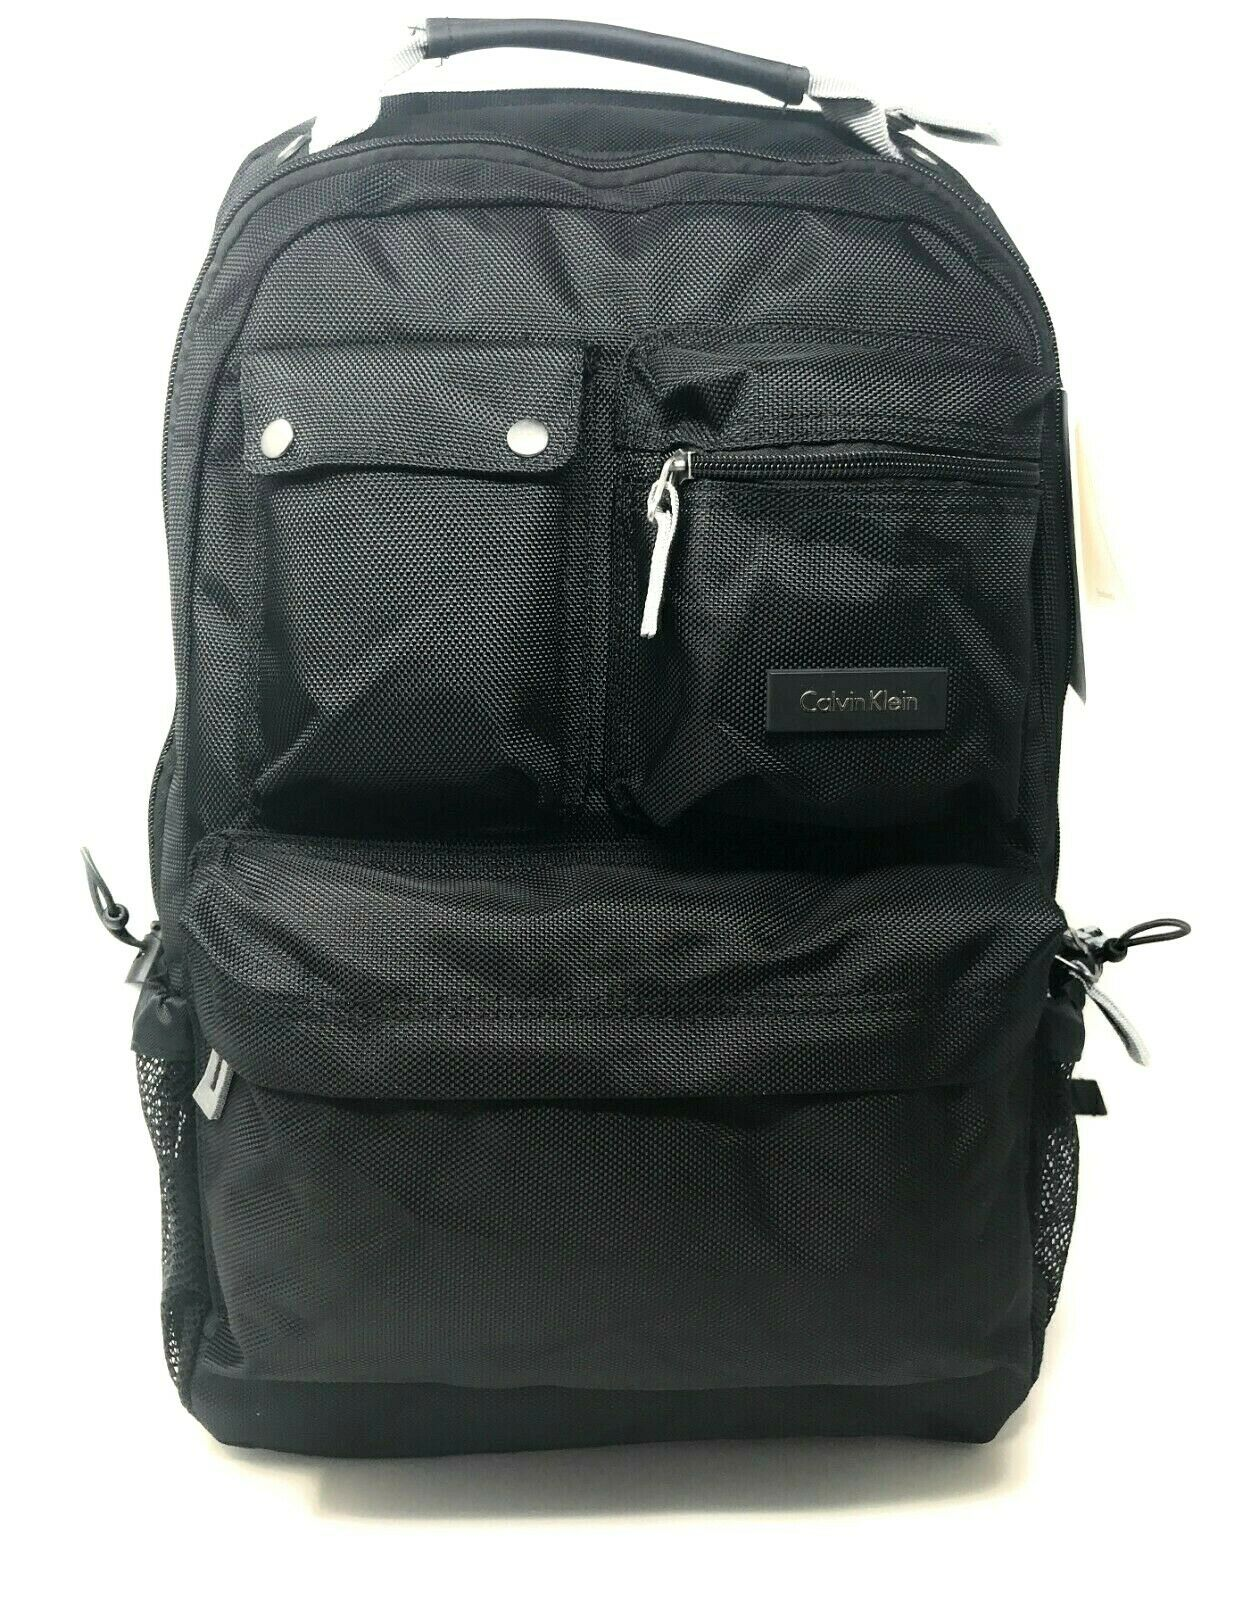 Calvin Klein Black Men's Backpack Laptop Bag Polyester Luggage Travel